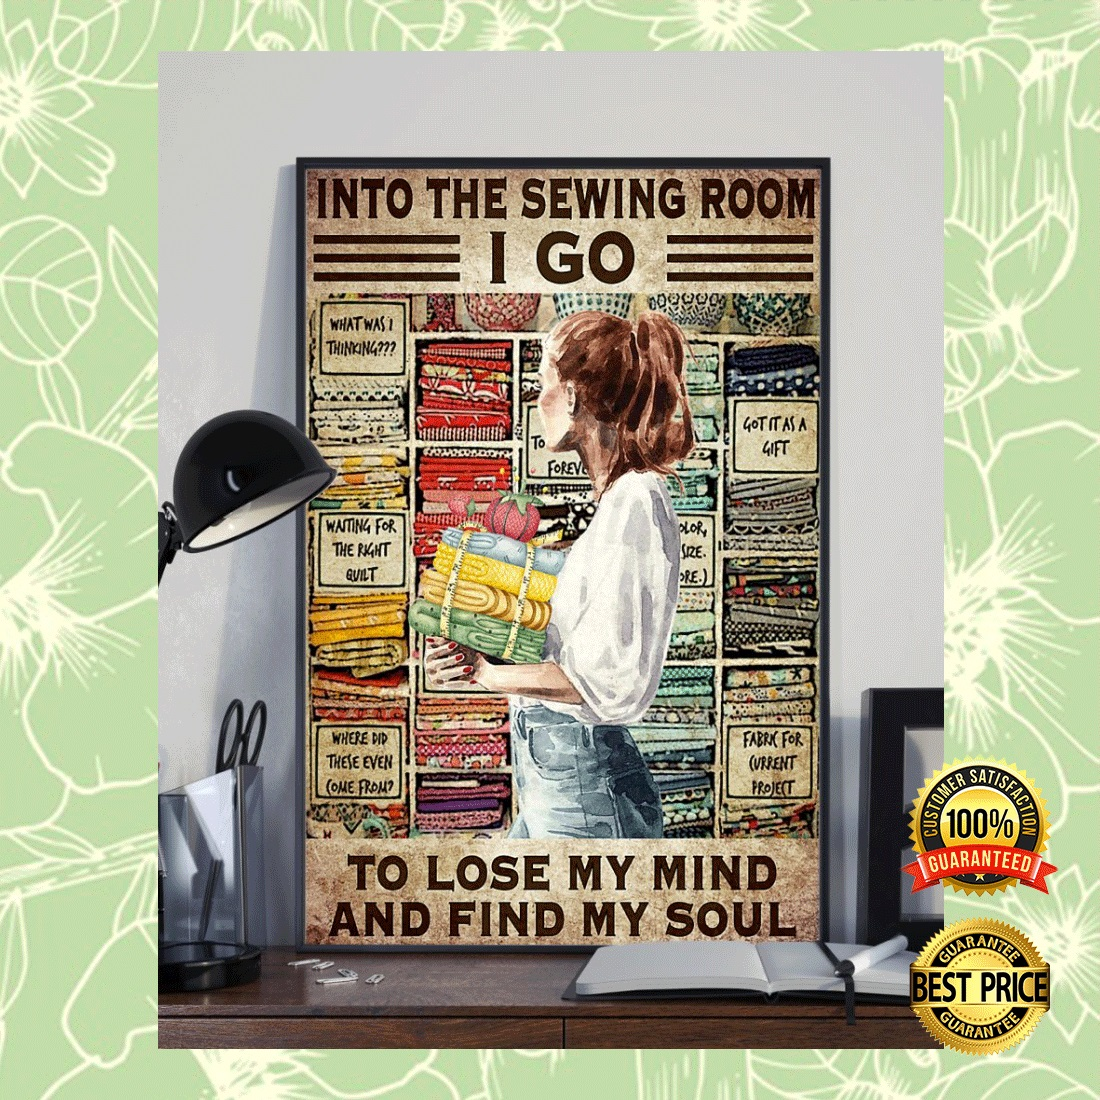 INTO THE SEWING ROOM I GO TO LOSE MY MIND AND FIND MY SOUL POSTER 7